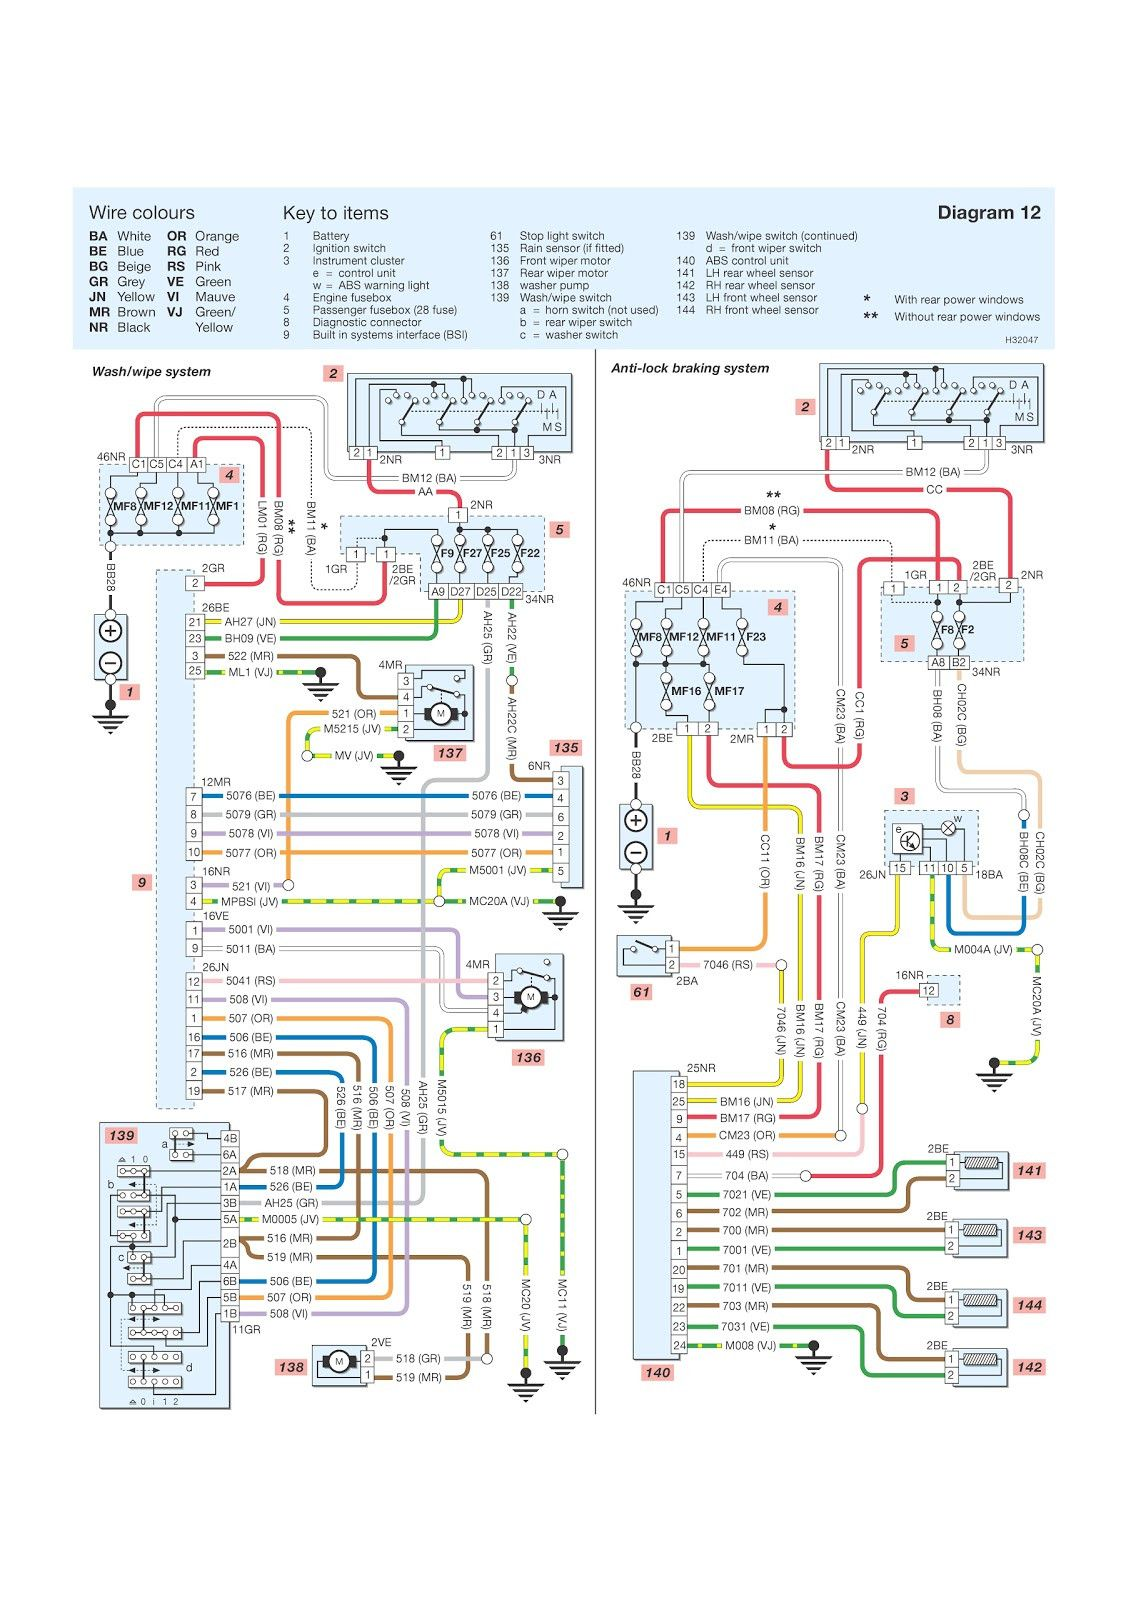 New Peugeot 206 Wiring Diagram Your Diagrams Source